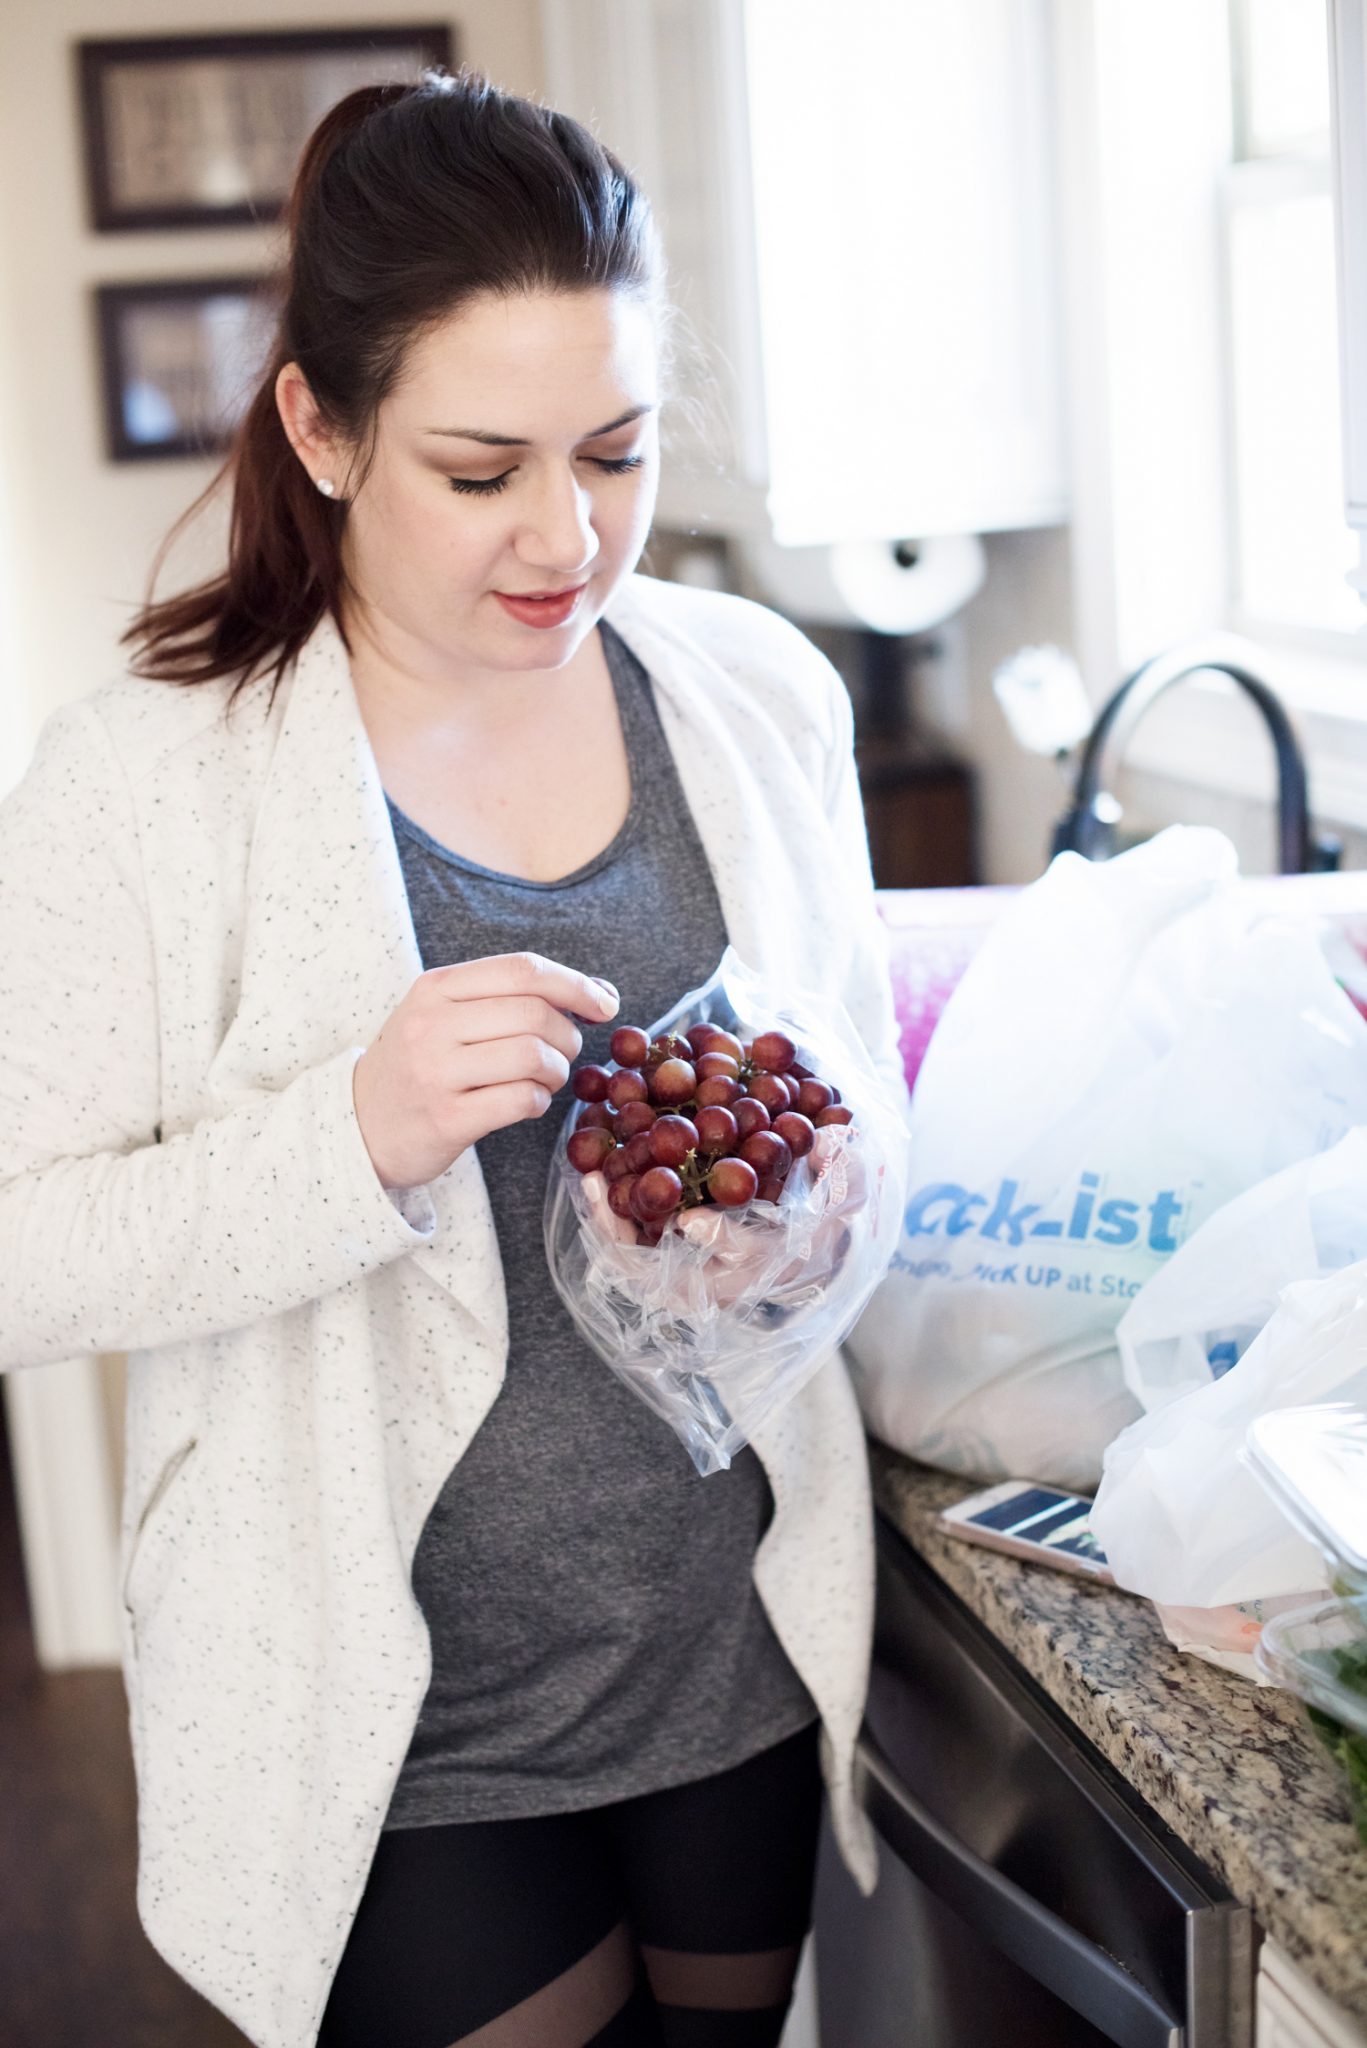 Sticking to your healthy lifestyle with Kroger ClickList.